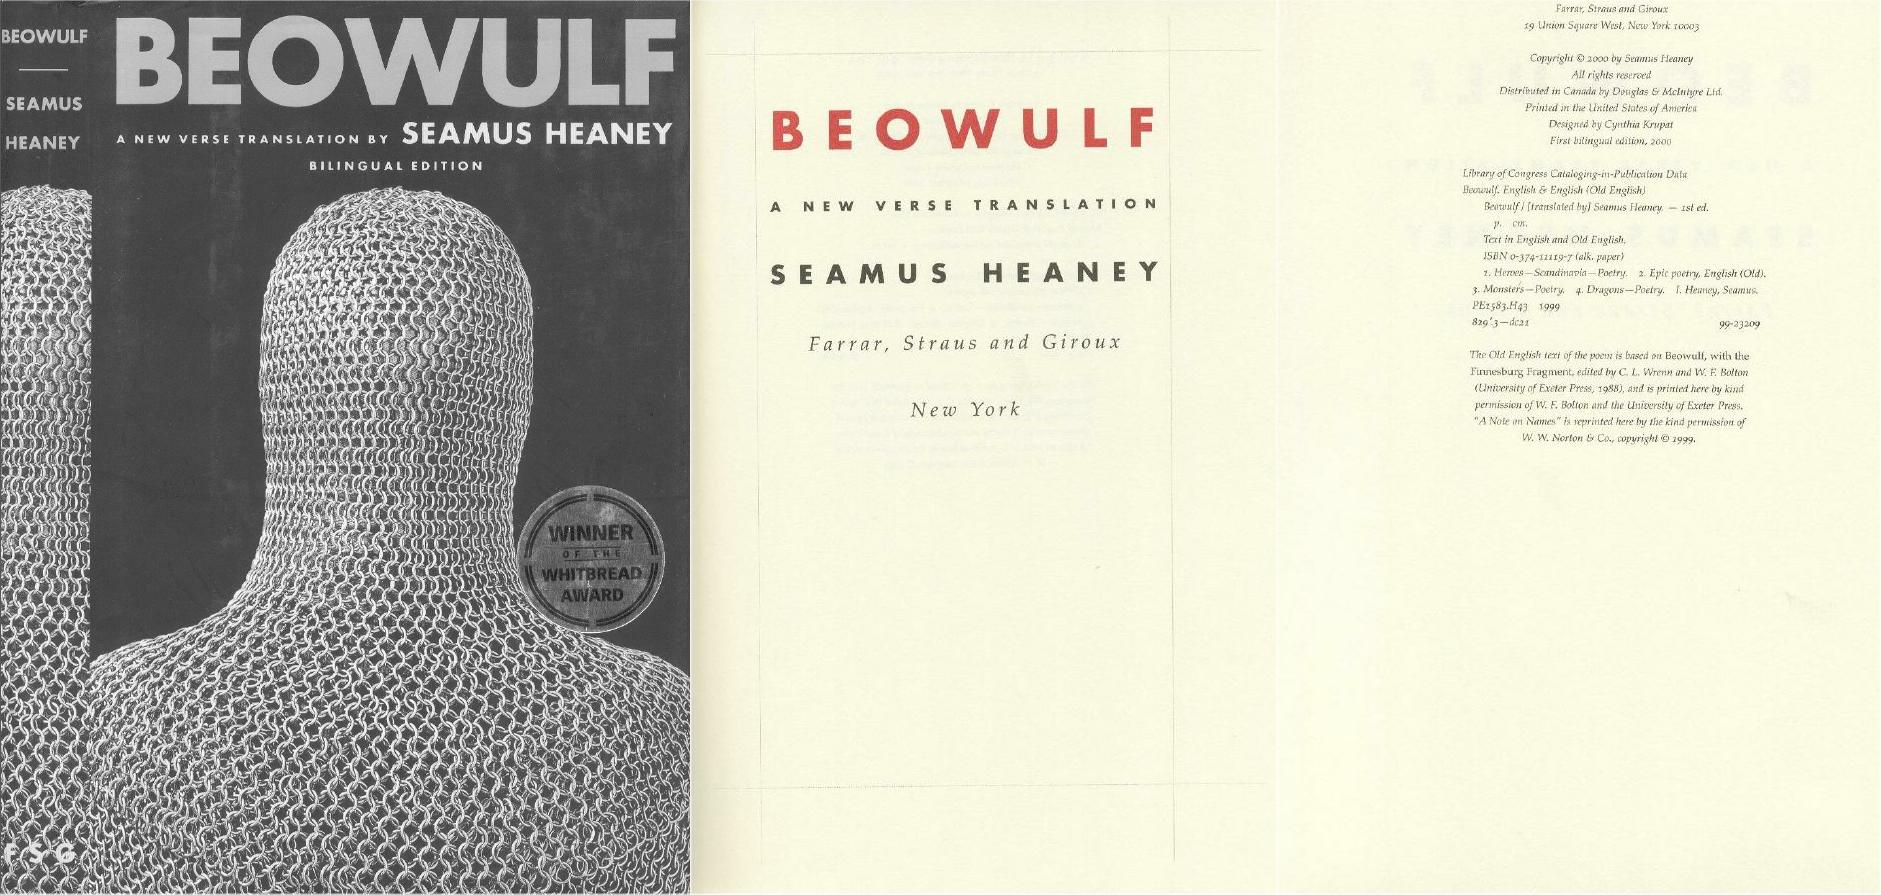 Beowulftranslationsnet A Note On The Seamus Heaney Translation